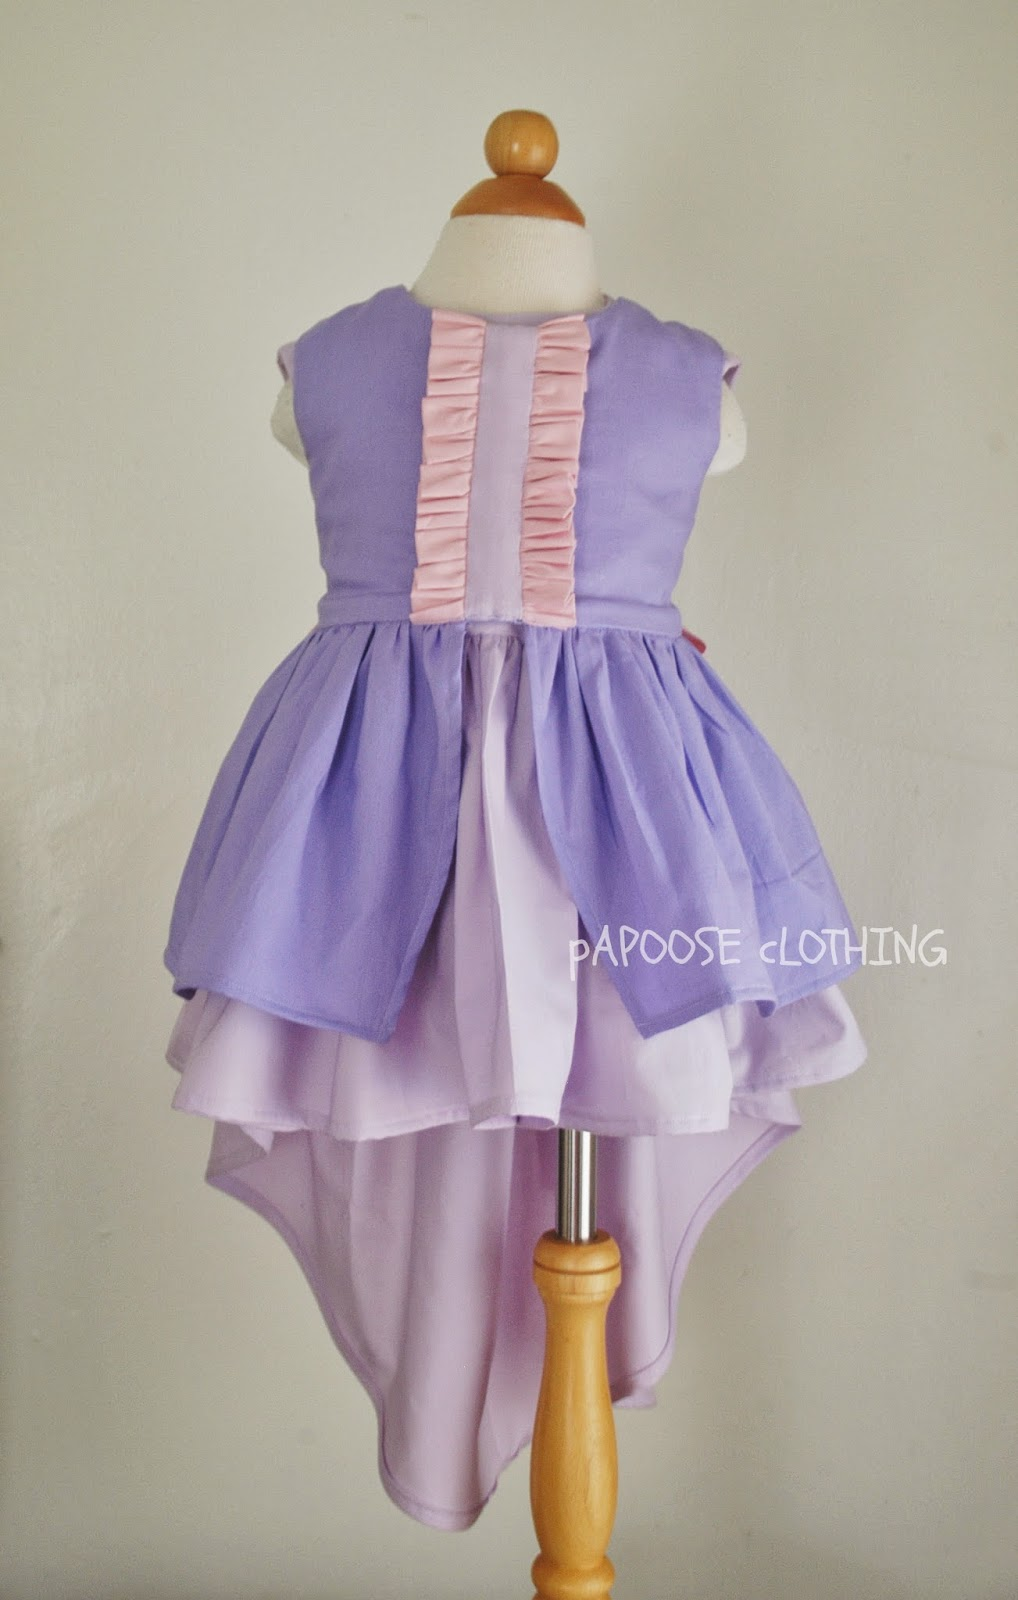 http://www.papooseclothing.com/store/p28/Cascading_Purple_Day_Dress.html